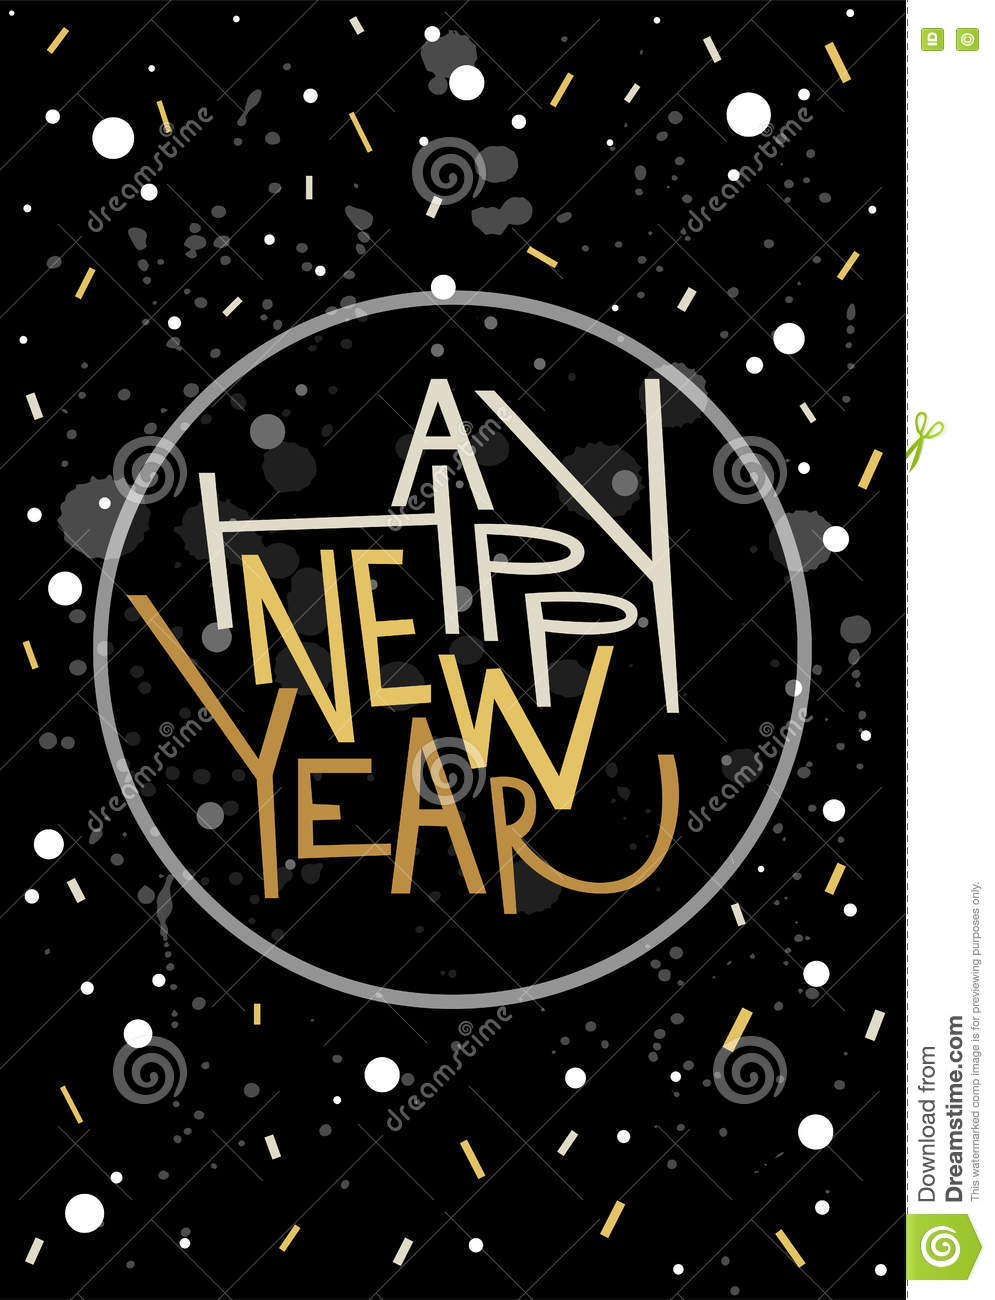 download happy new year greeting card print poster winter decoration stock illustration